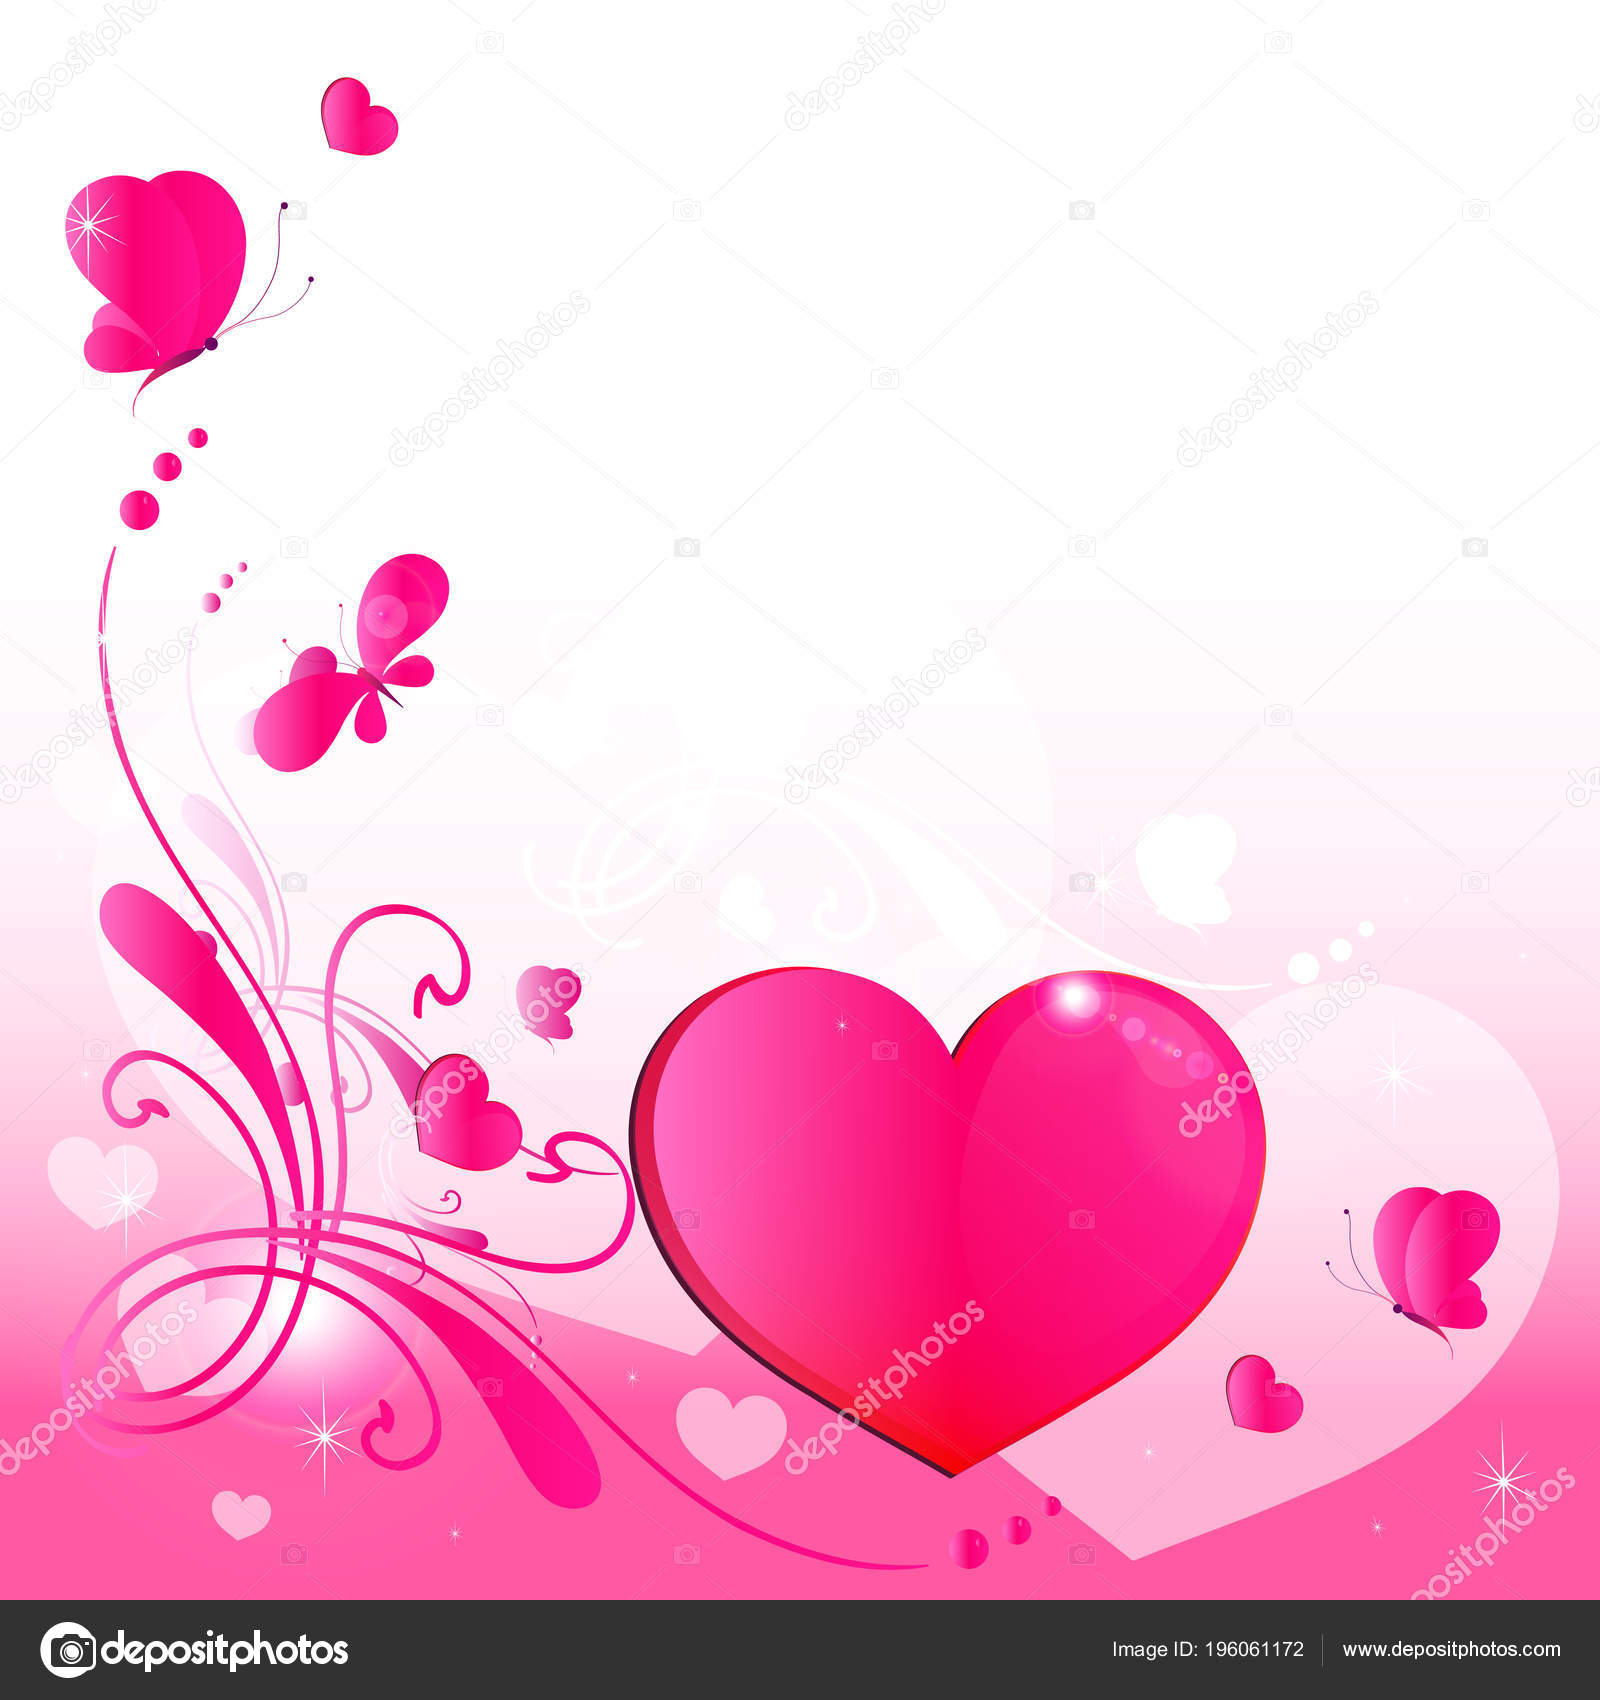 Wedding Card Design Pink Hearts Butterflies Isolated White